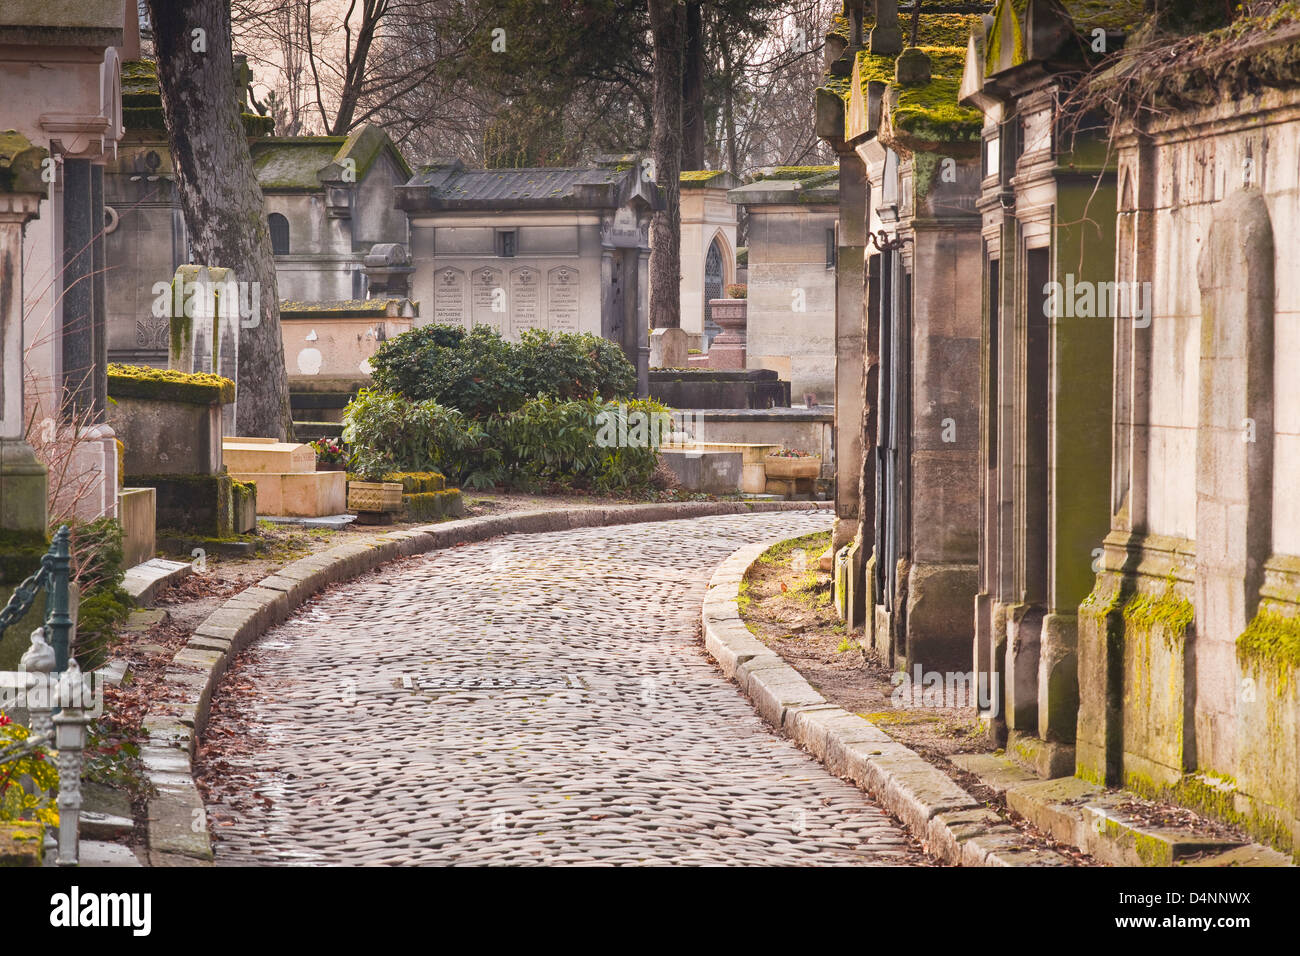 Graves in Pere lachaise cemetary in paris. Stock Photo